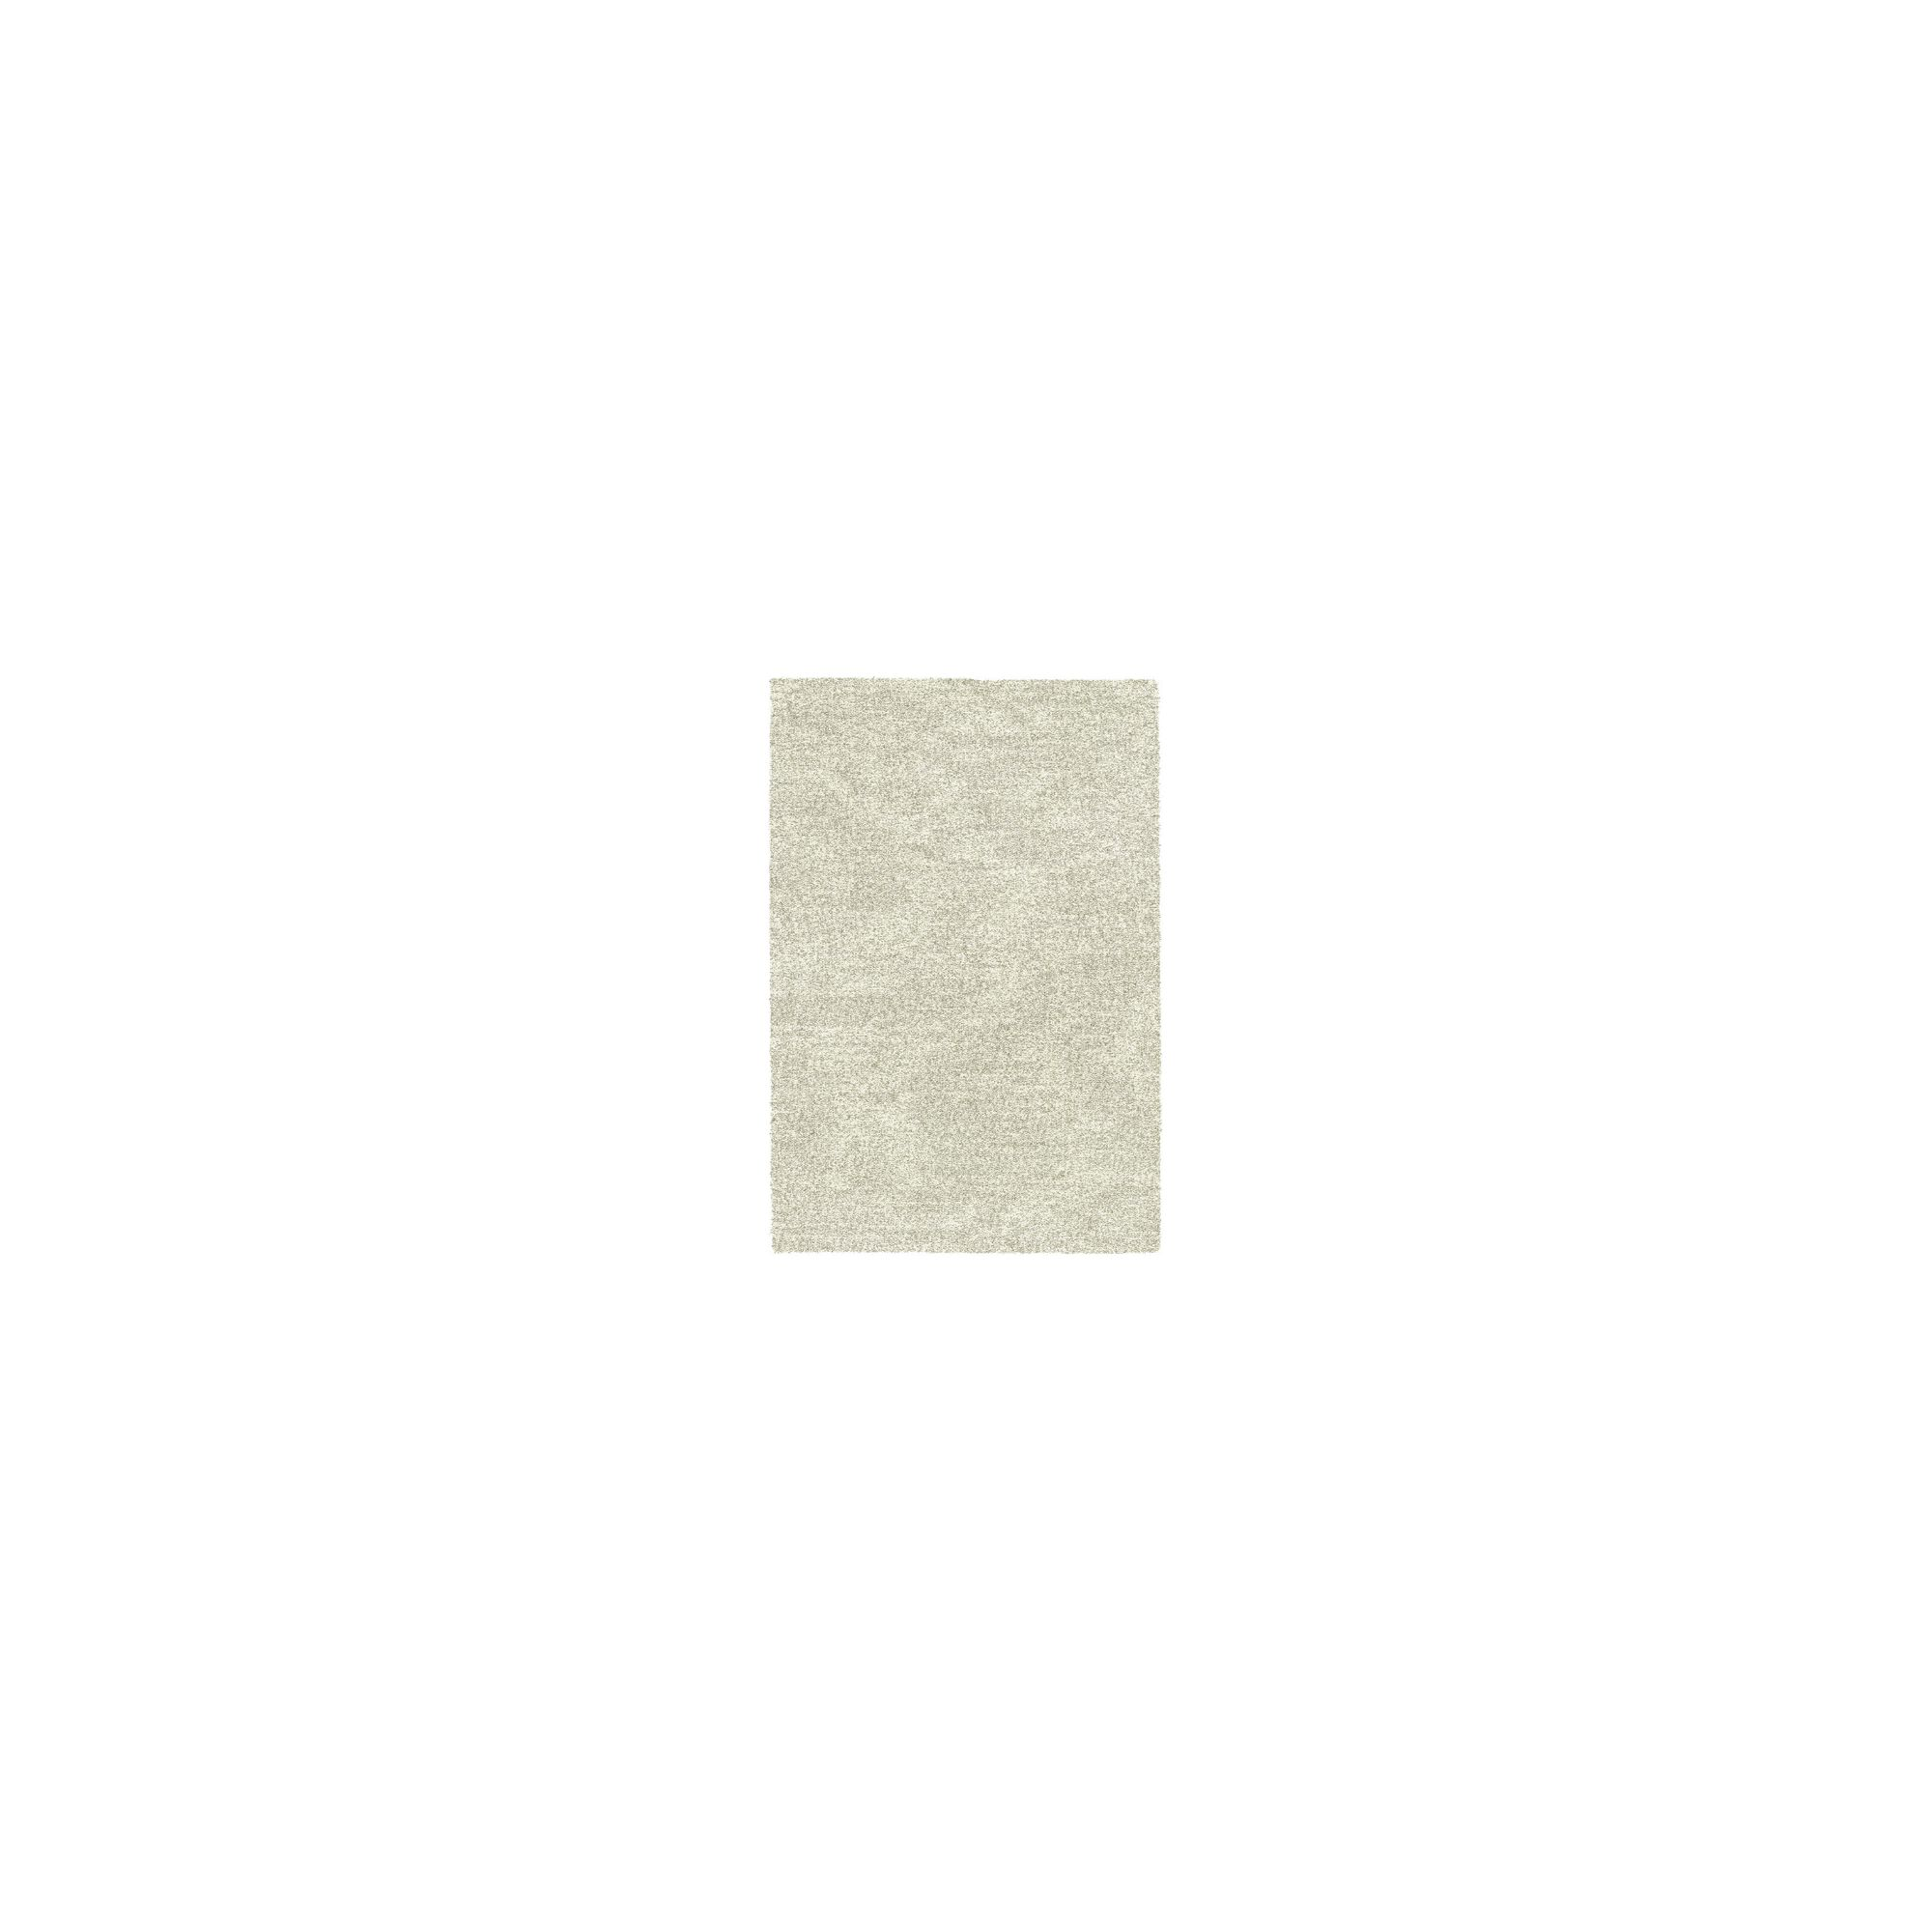 Mastercraft Rugs Mehari Cream Beige Solid Rug - 200cm x 290cm at Tesco Direct